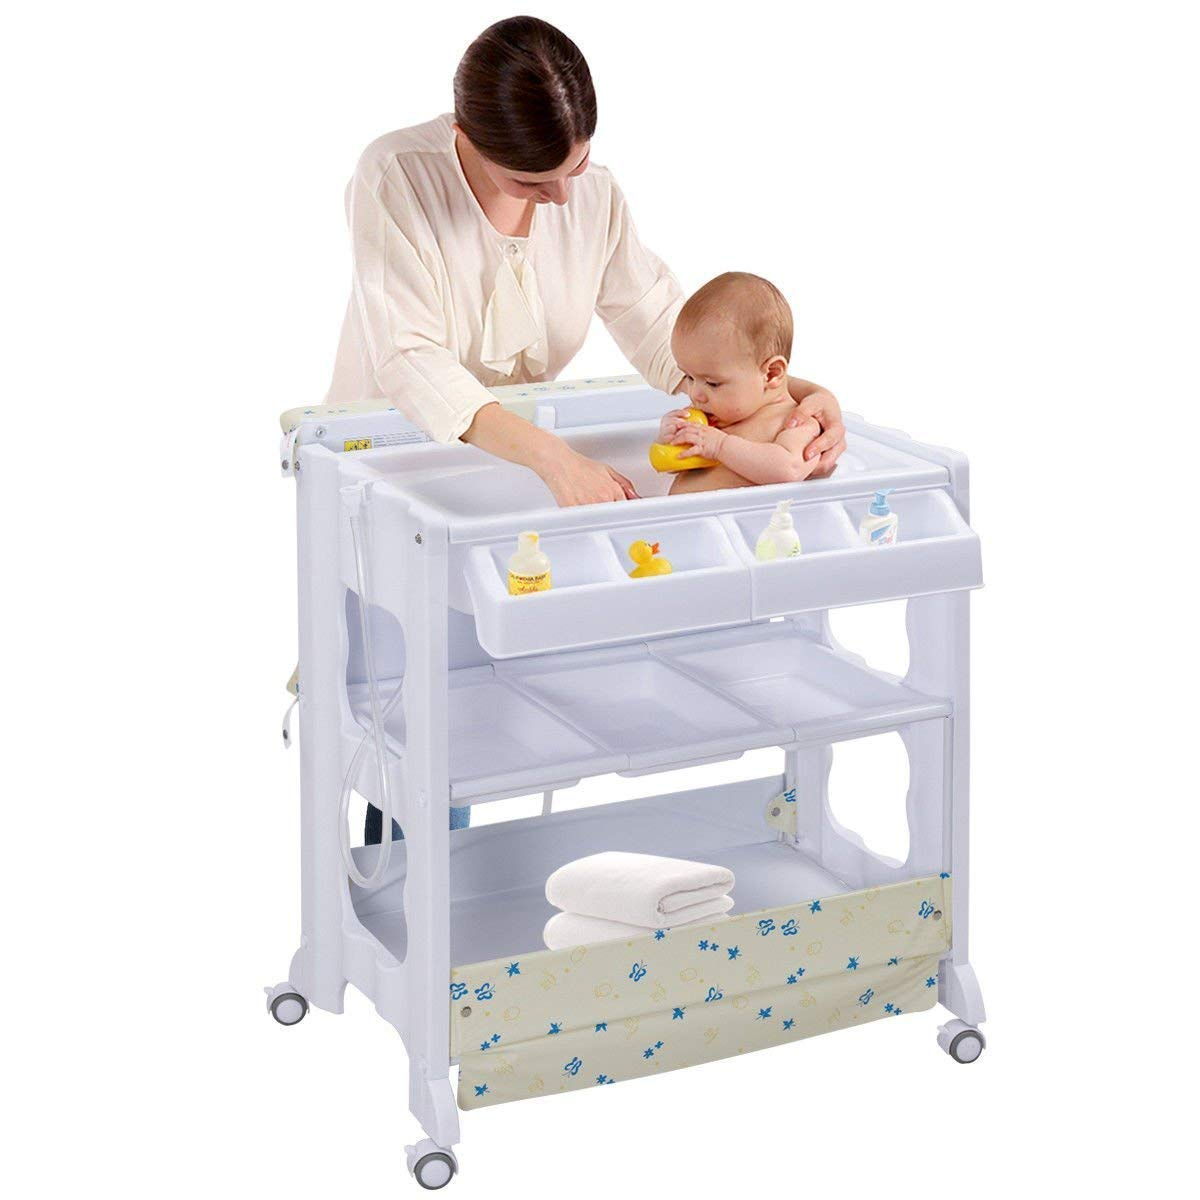 Costzon Baby Bath and Changing Table, Diaper Organizer for Infant with Tube & Cushion (Beige) by Costzon (Image #1)